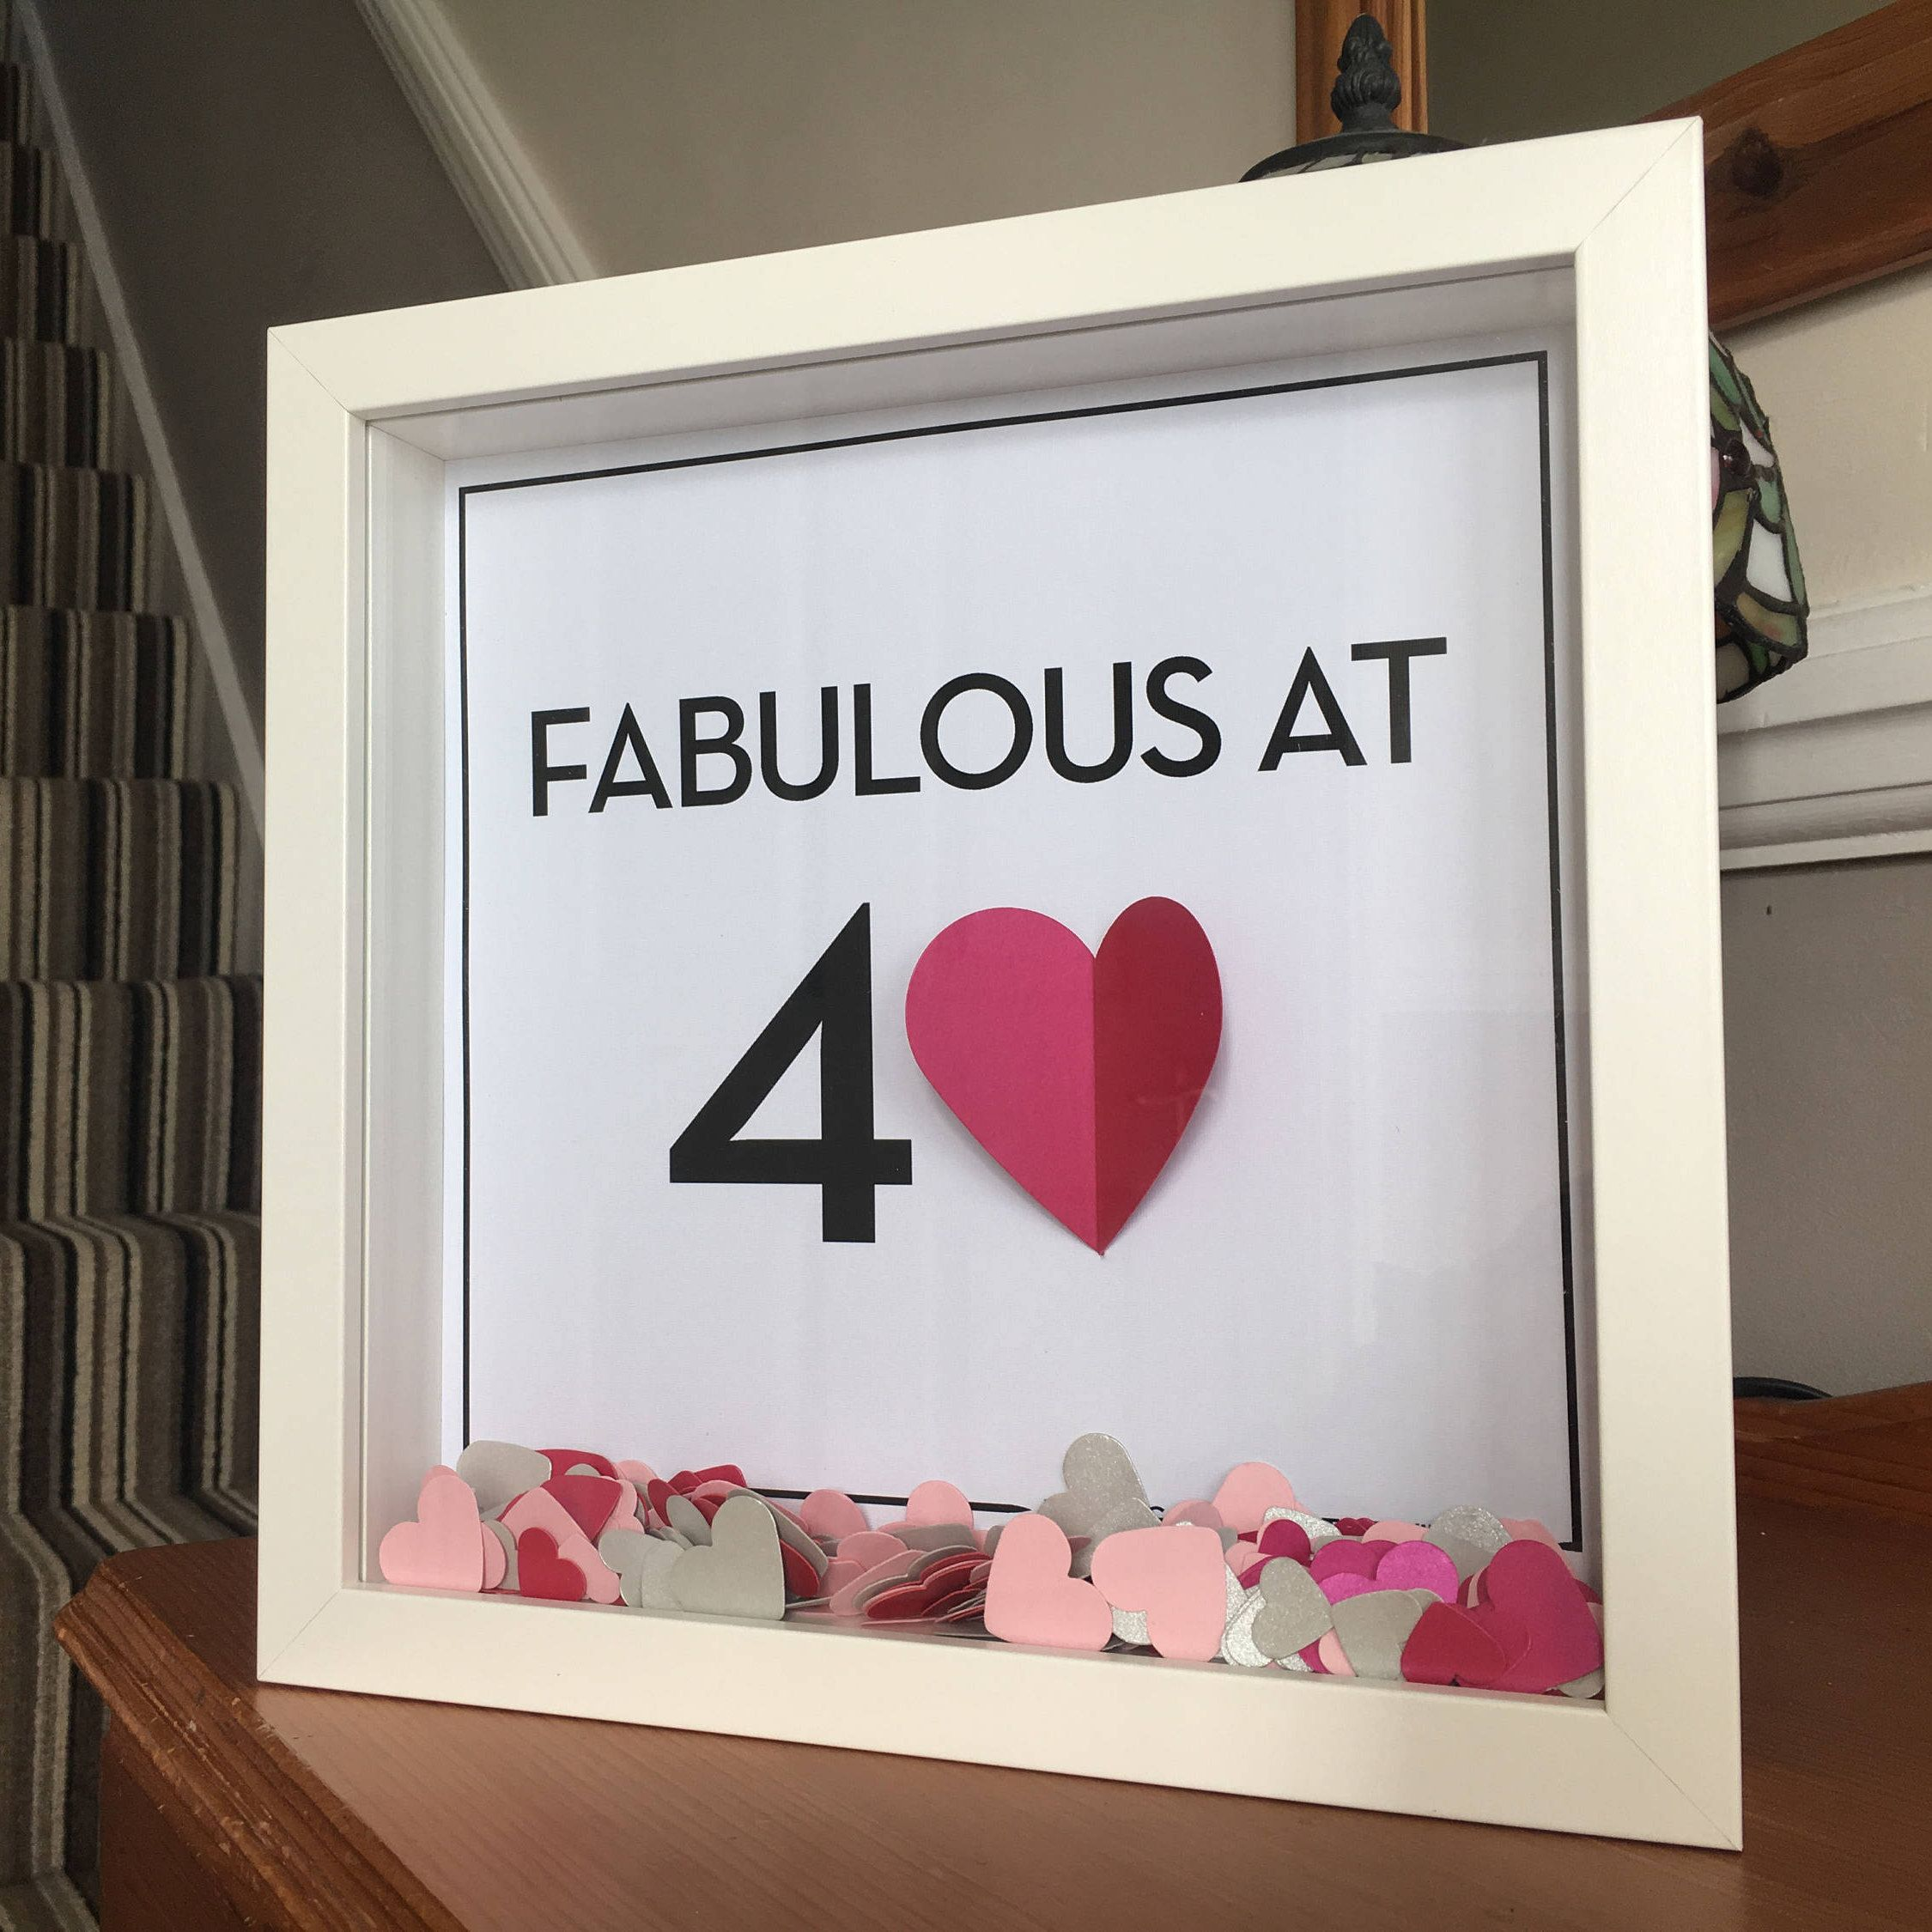 3D heart Milestone birthday frame - 3D Heart - Fabulous at 40 ...